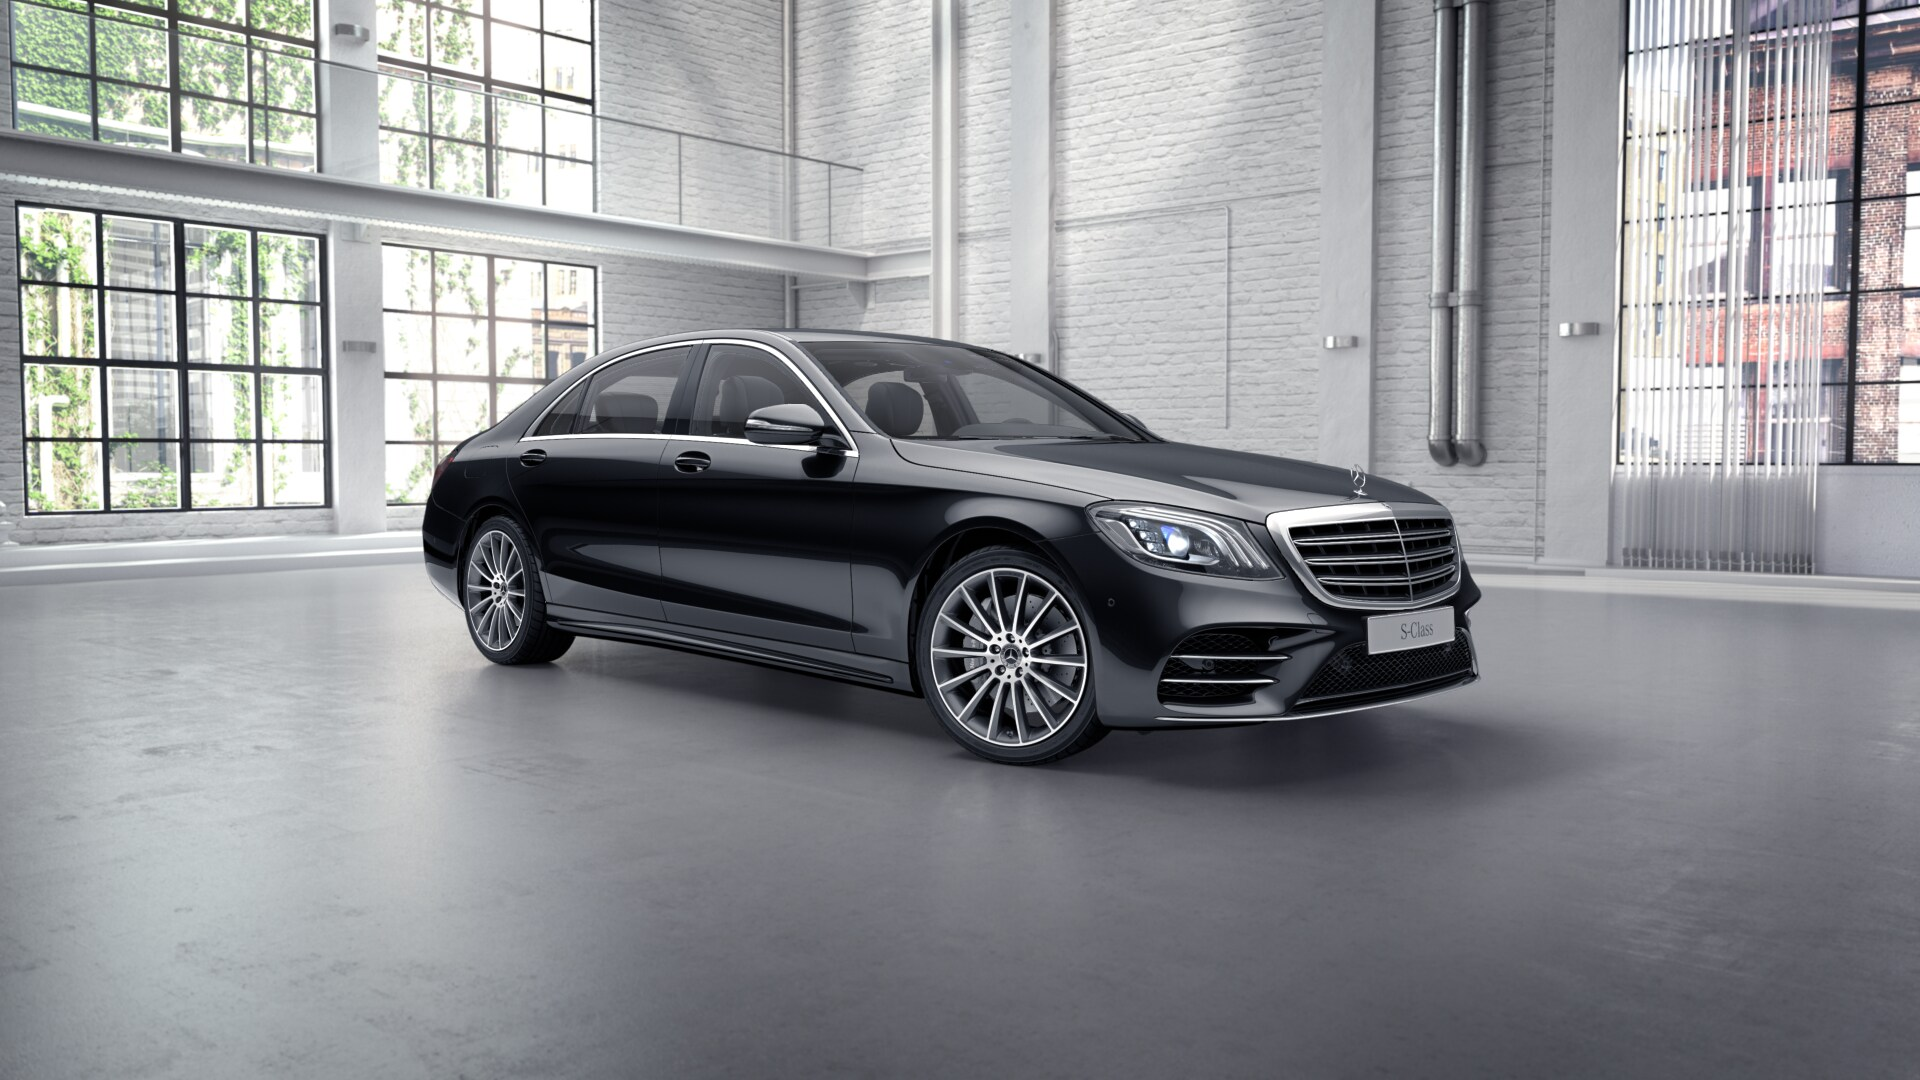 Mercedes-Benz S 400 d 4MATIC L